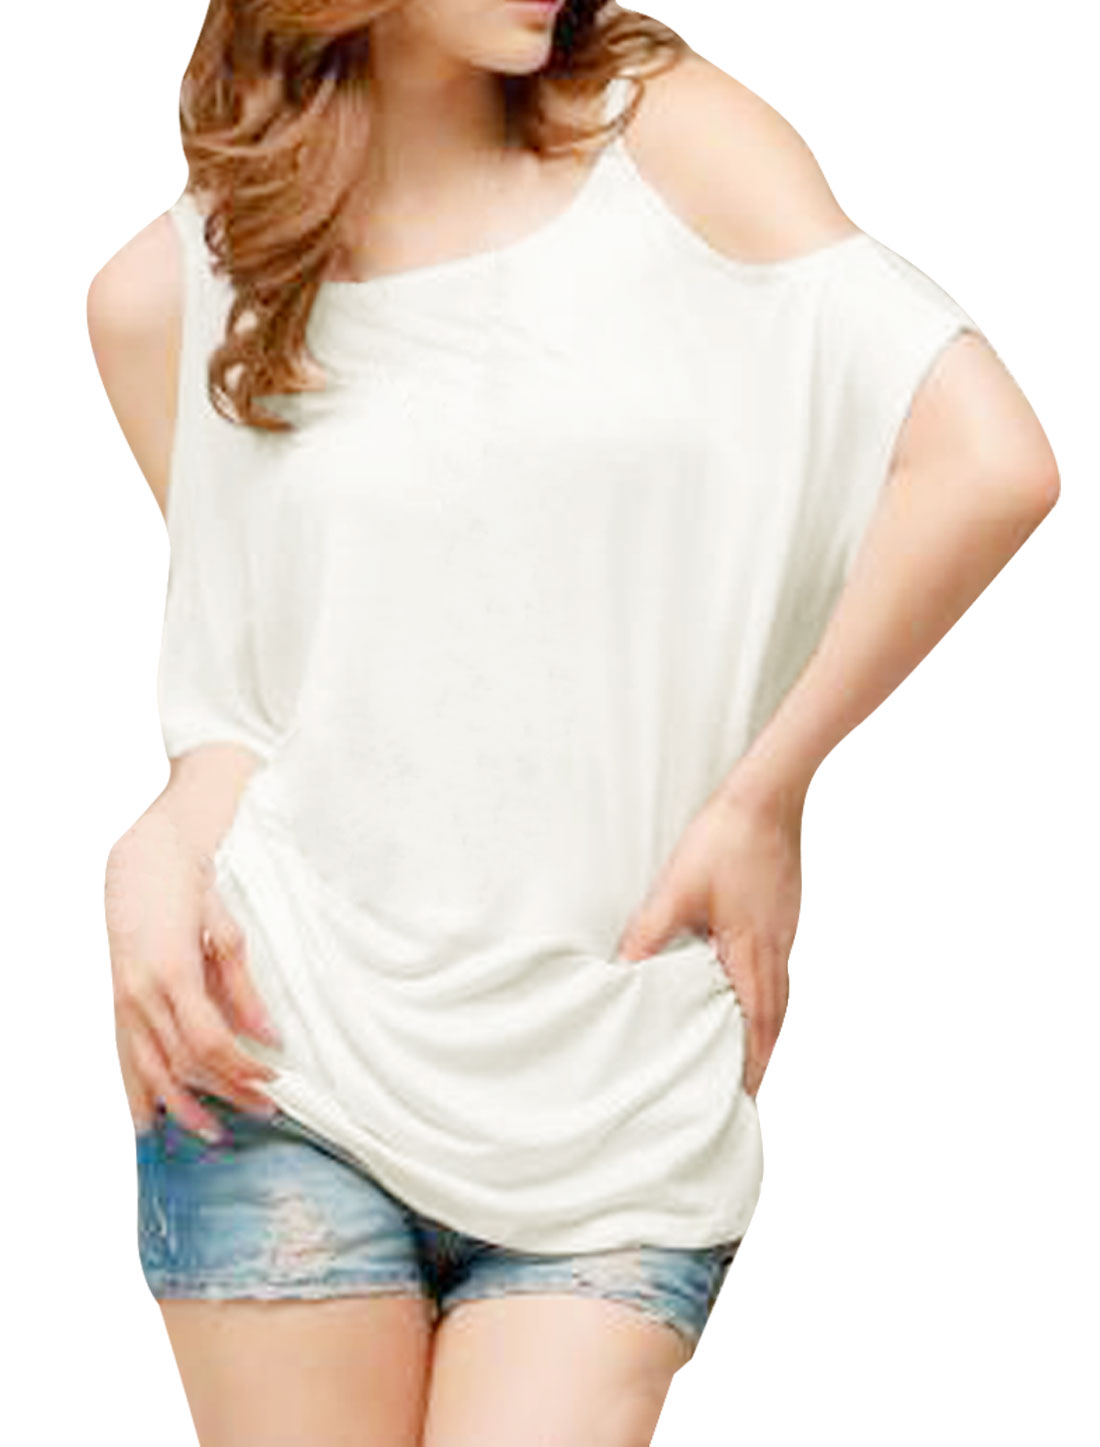 Ladies Summer Scoop Neck Cut out Shoulder White Shirt S